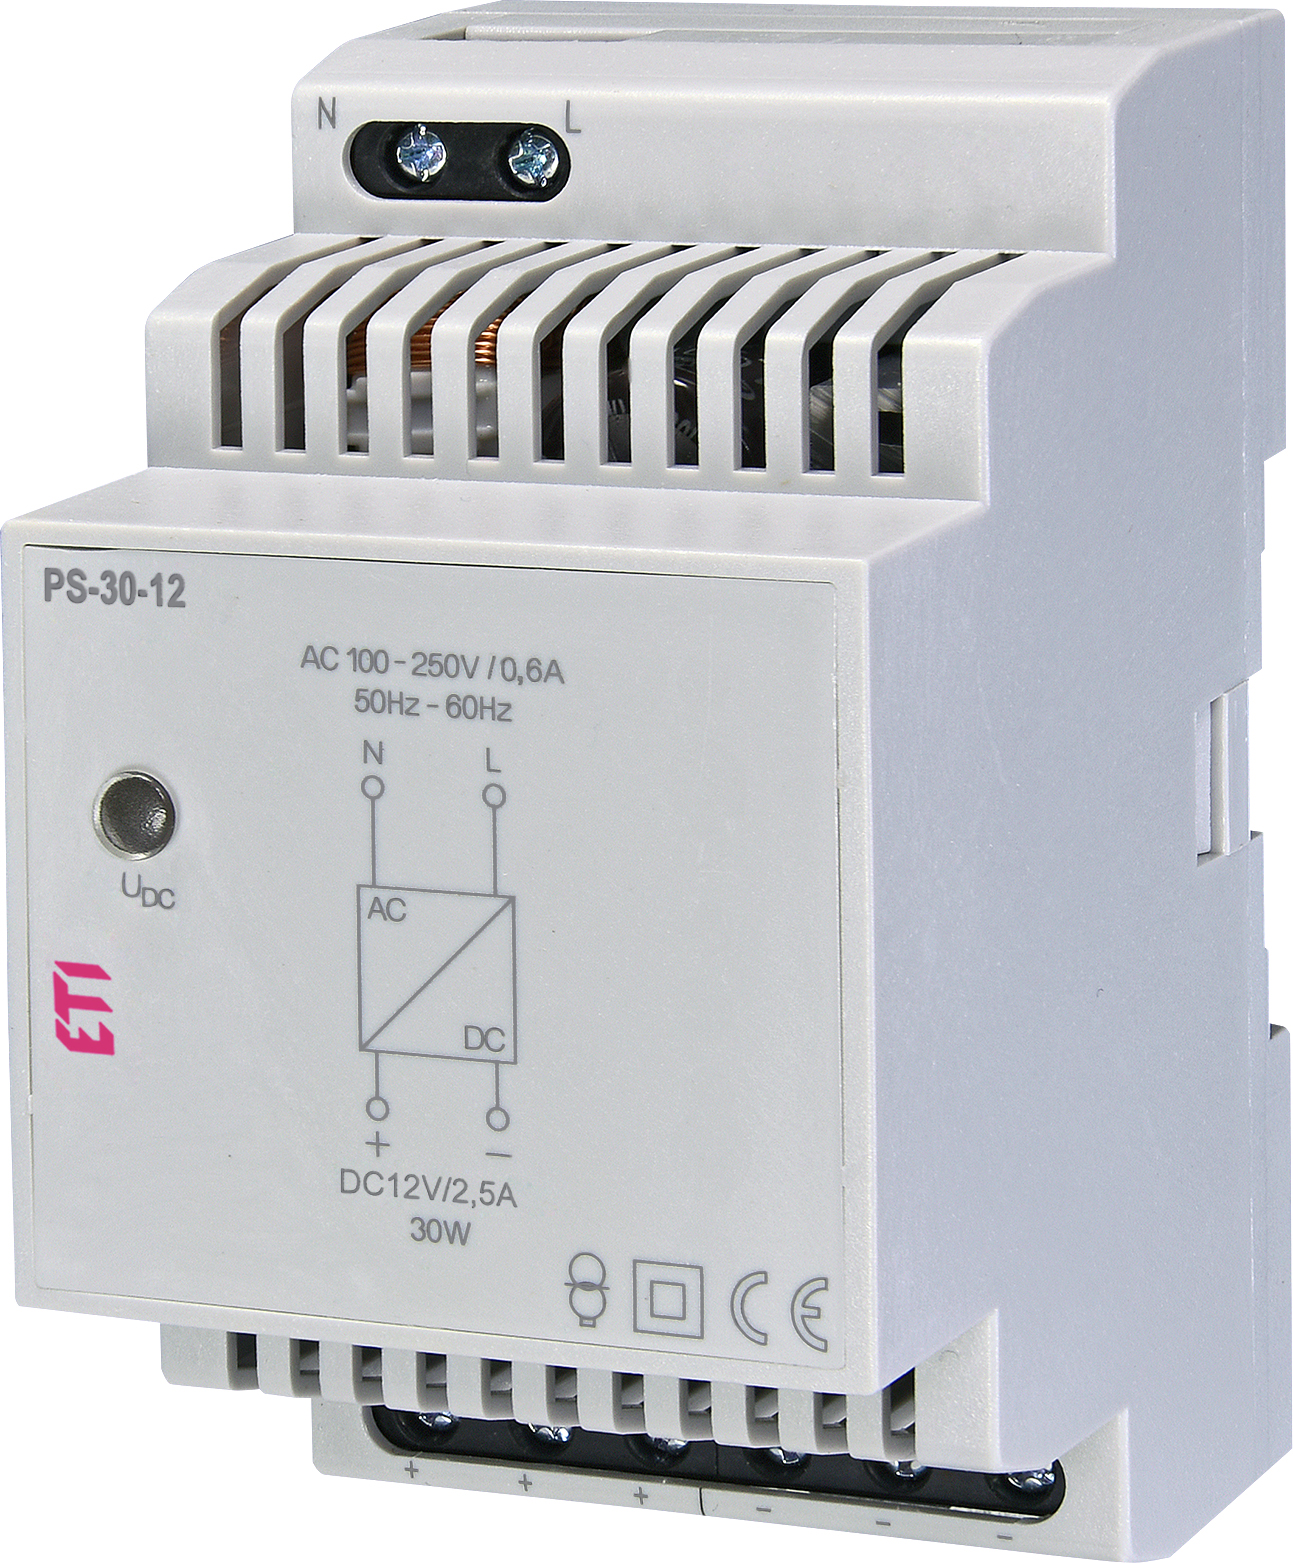 Search 002470132 12 Parallel Ac Circuits Specifications